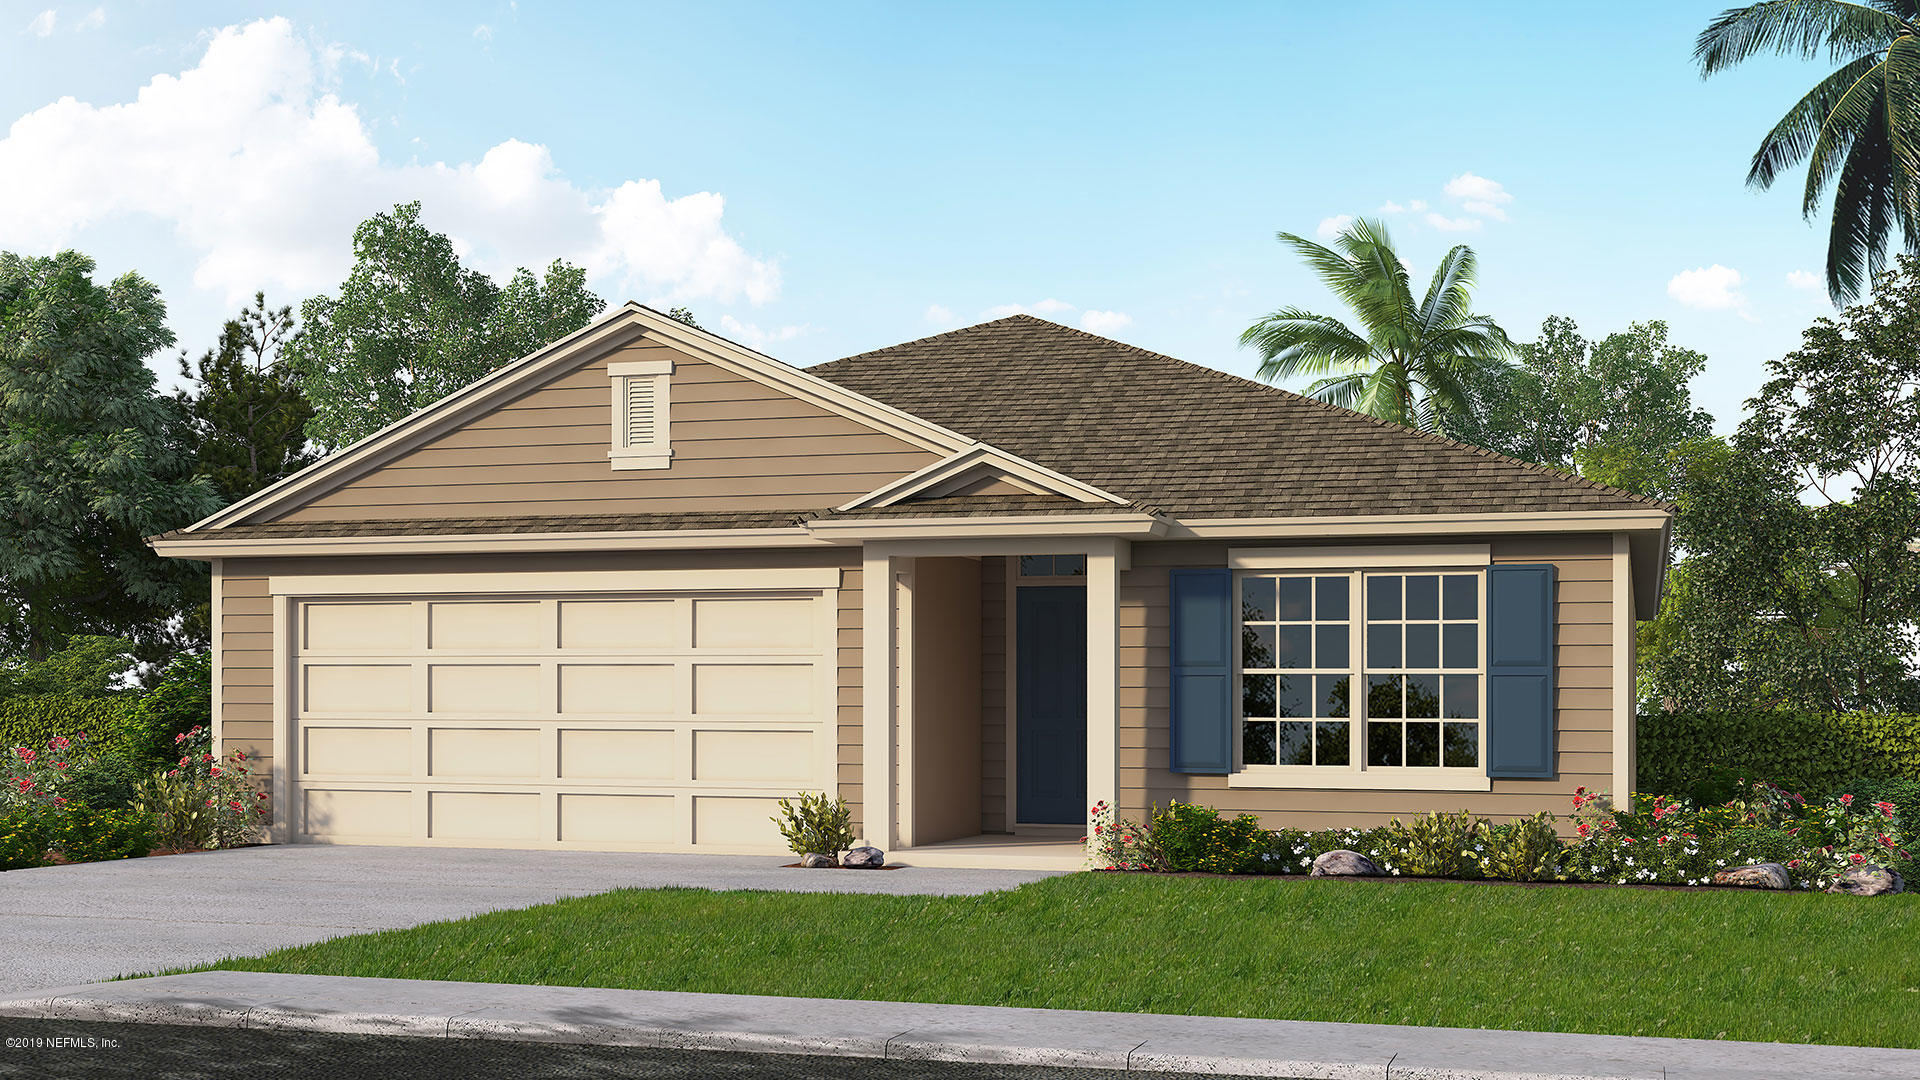 Photo of 2210 PEBBLE POINT, GREEN COVE SPRINGS, FL 32043